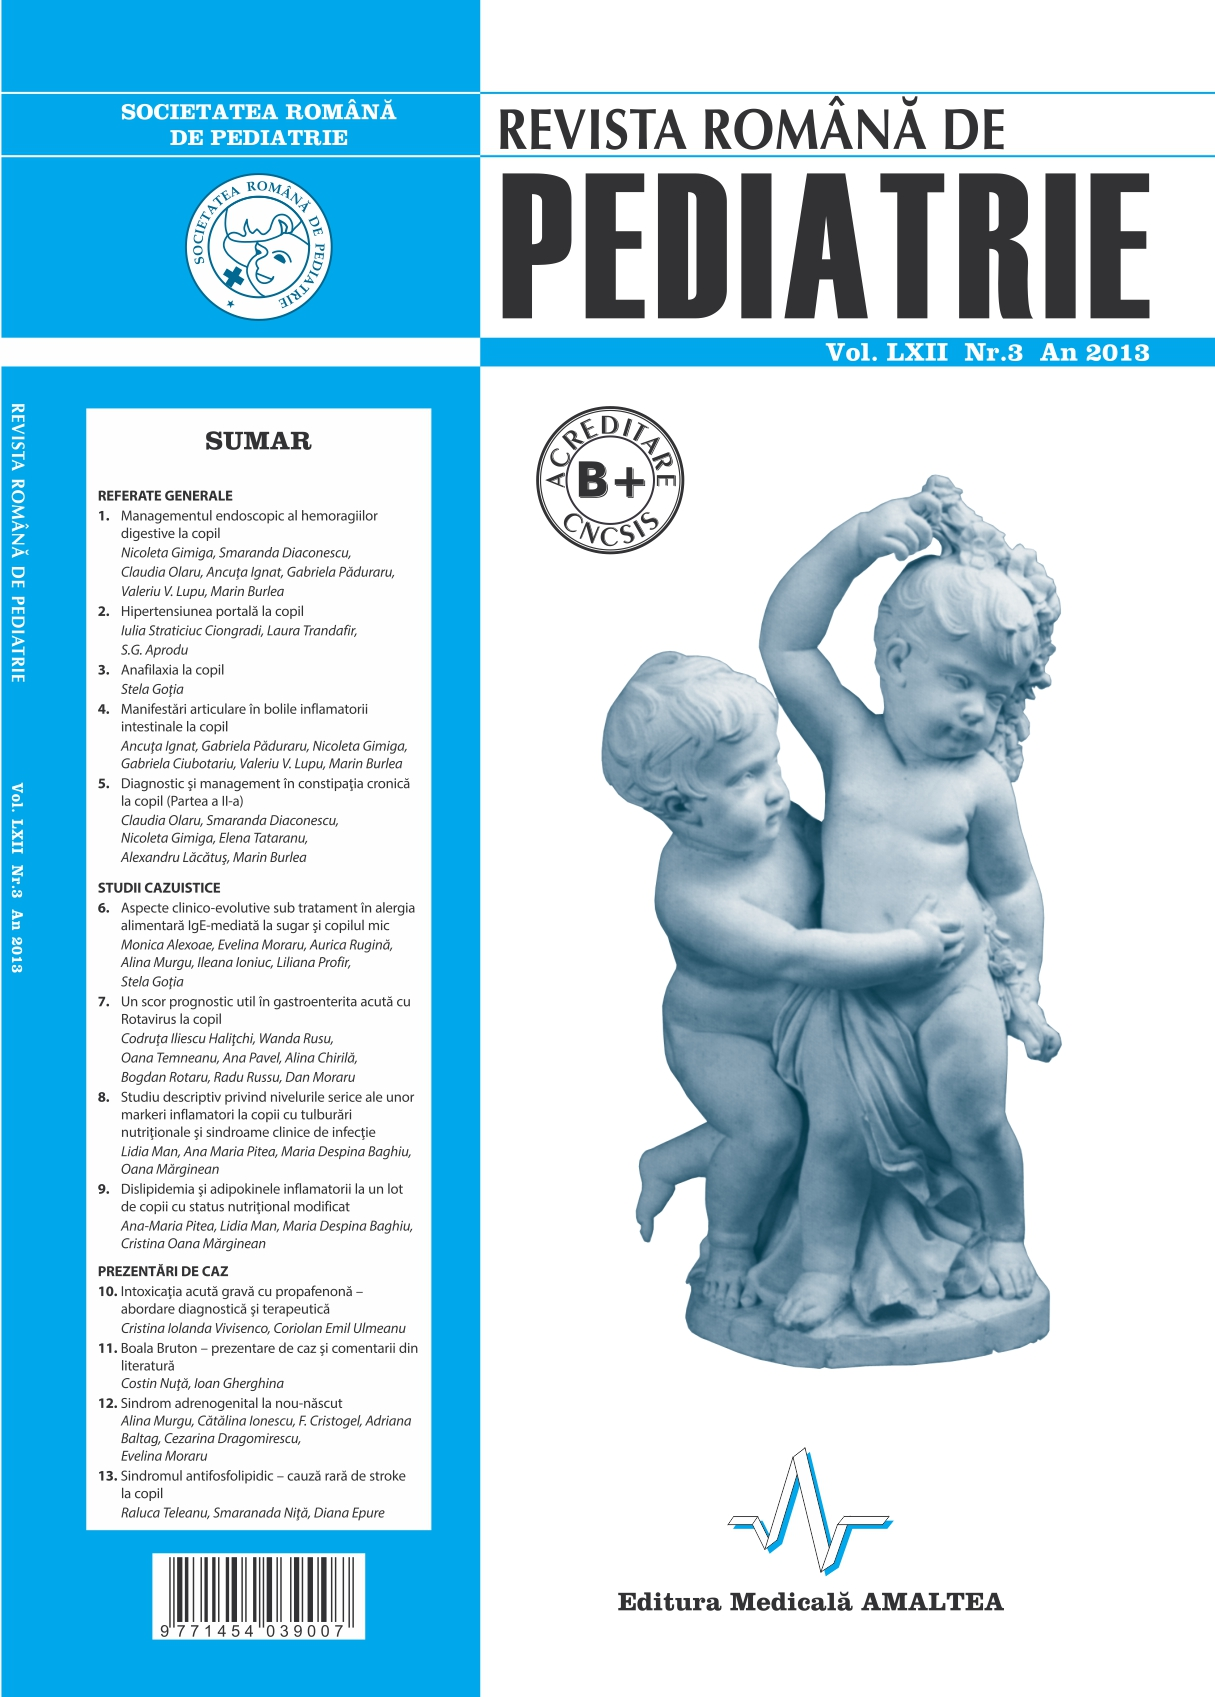 Revista Romana de PEDIATRIE | Volumul LXII, No. 3, Year 2013